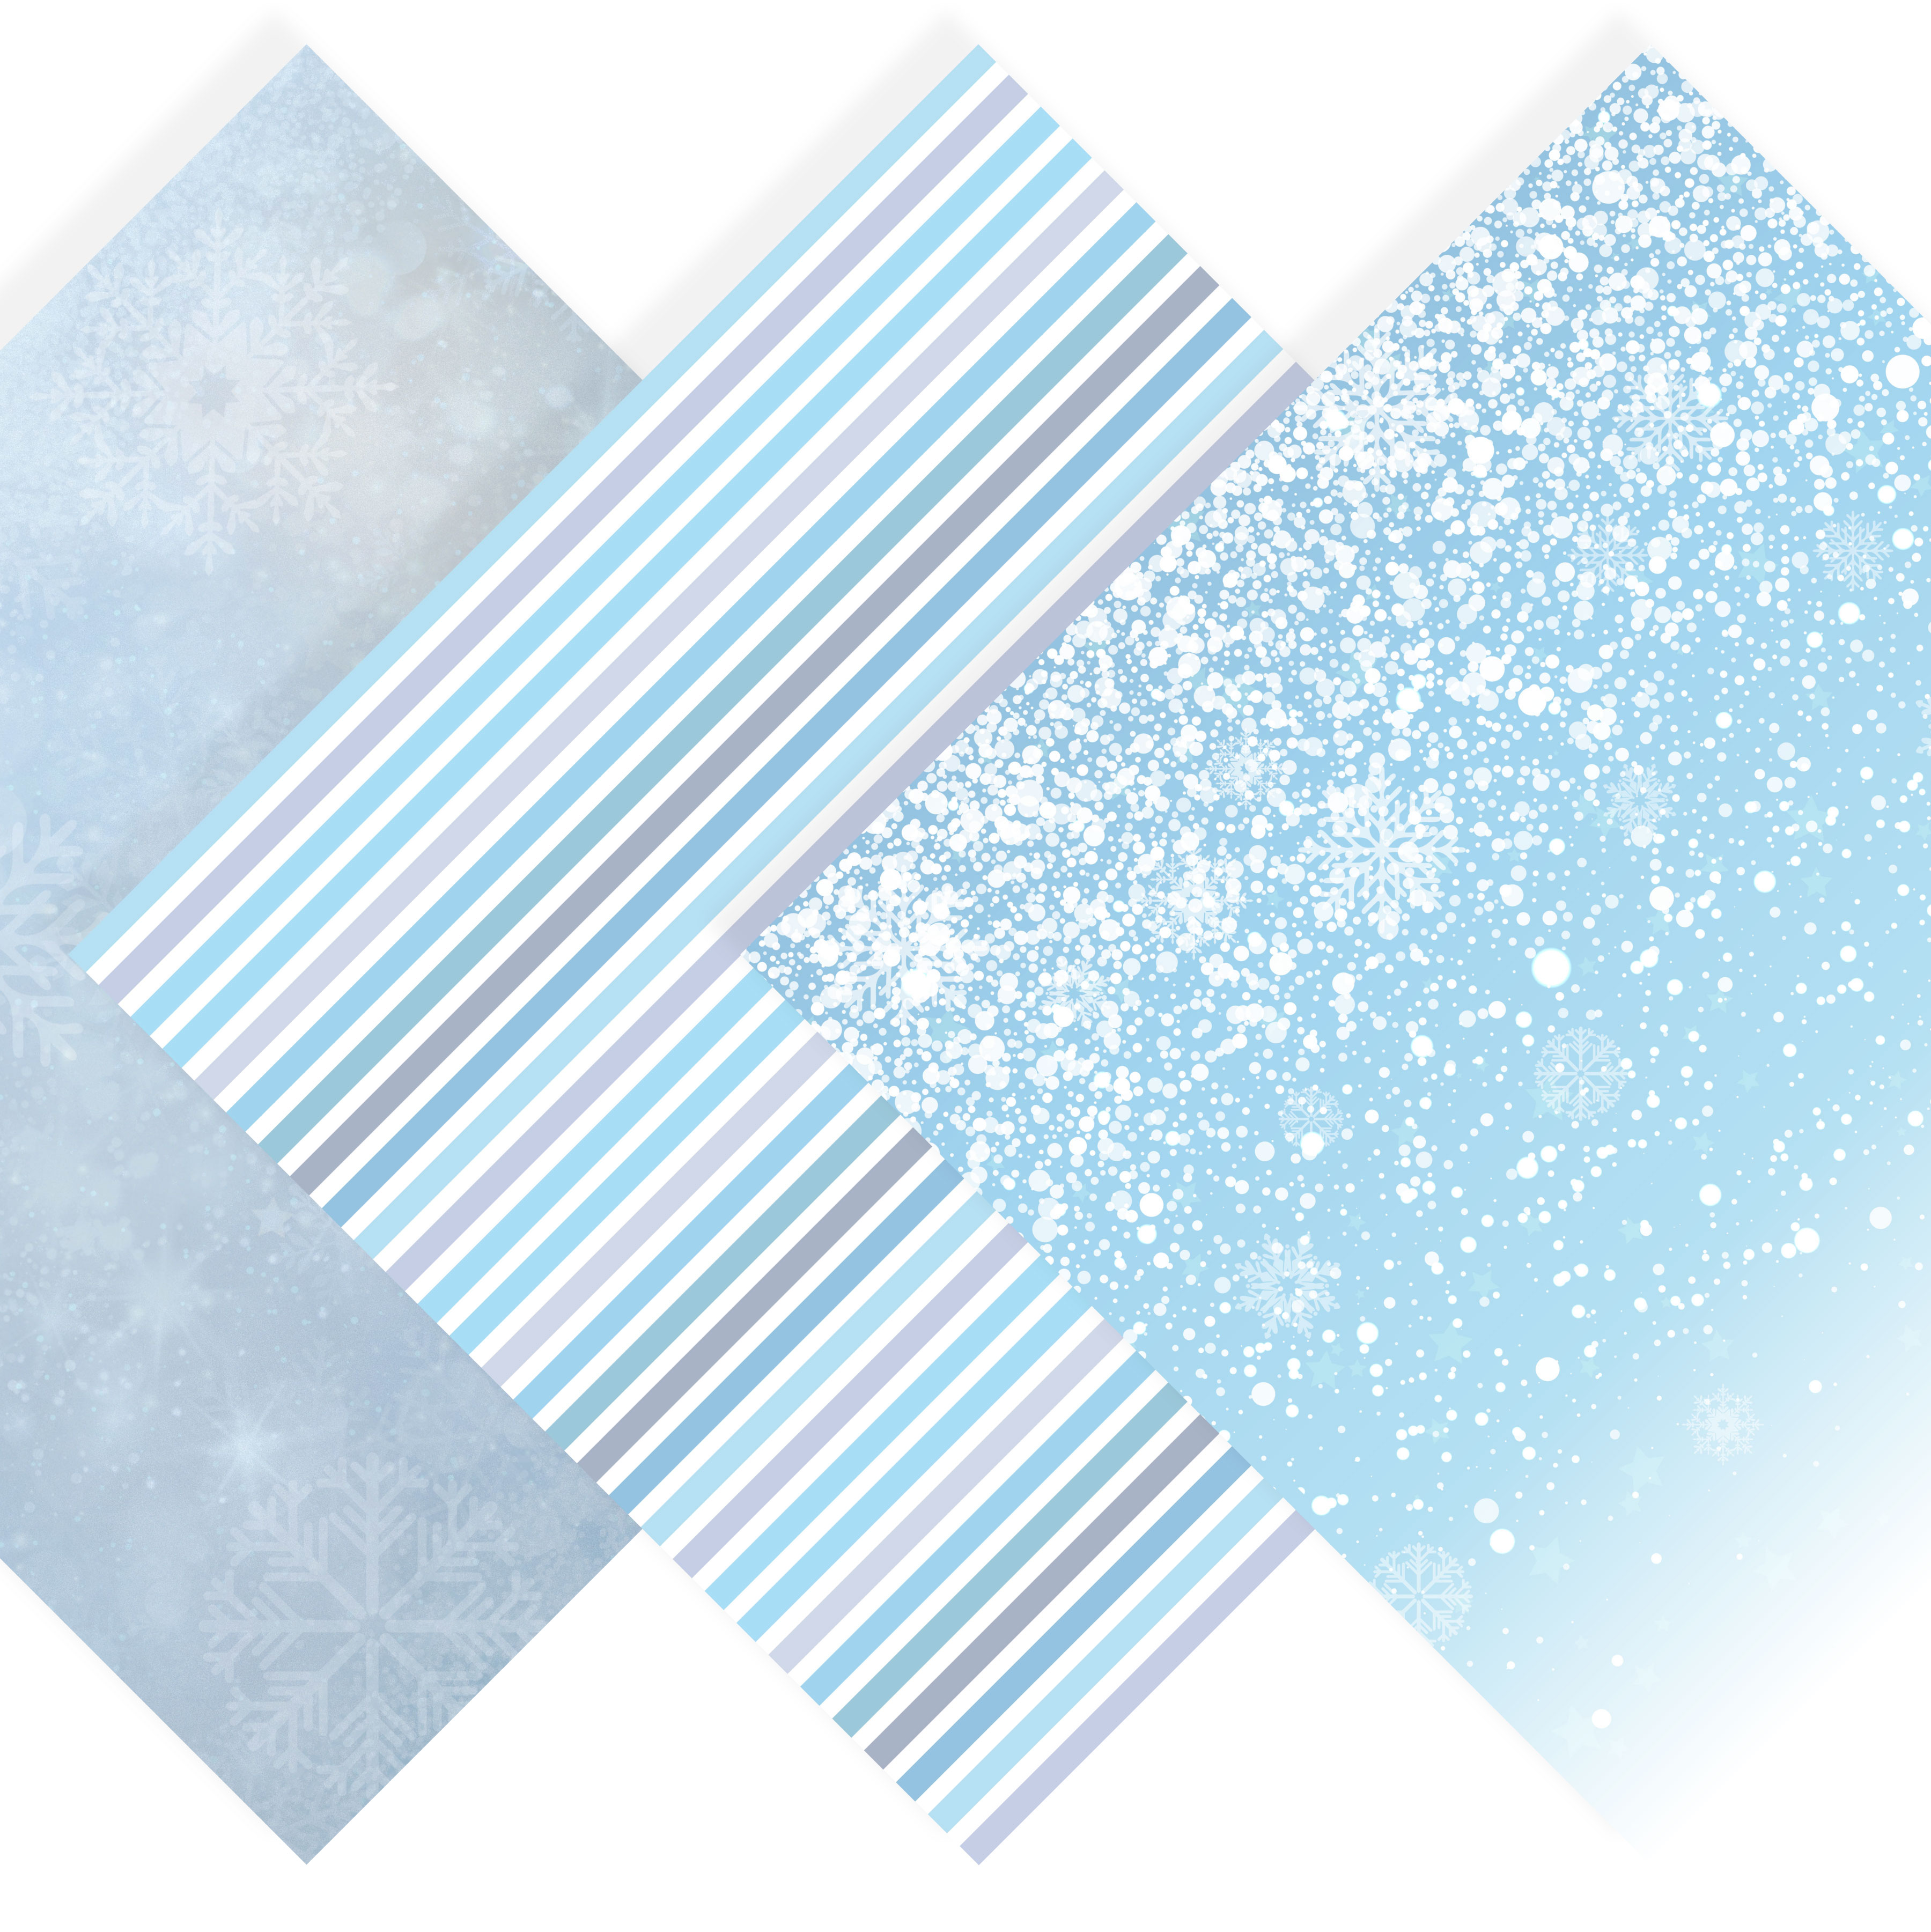 Snowflake Clipart & Winter Digital Paper example image 2